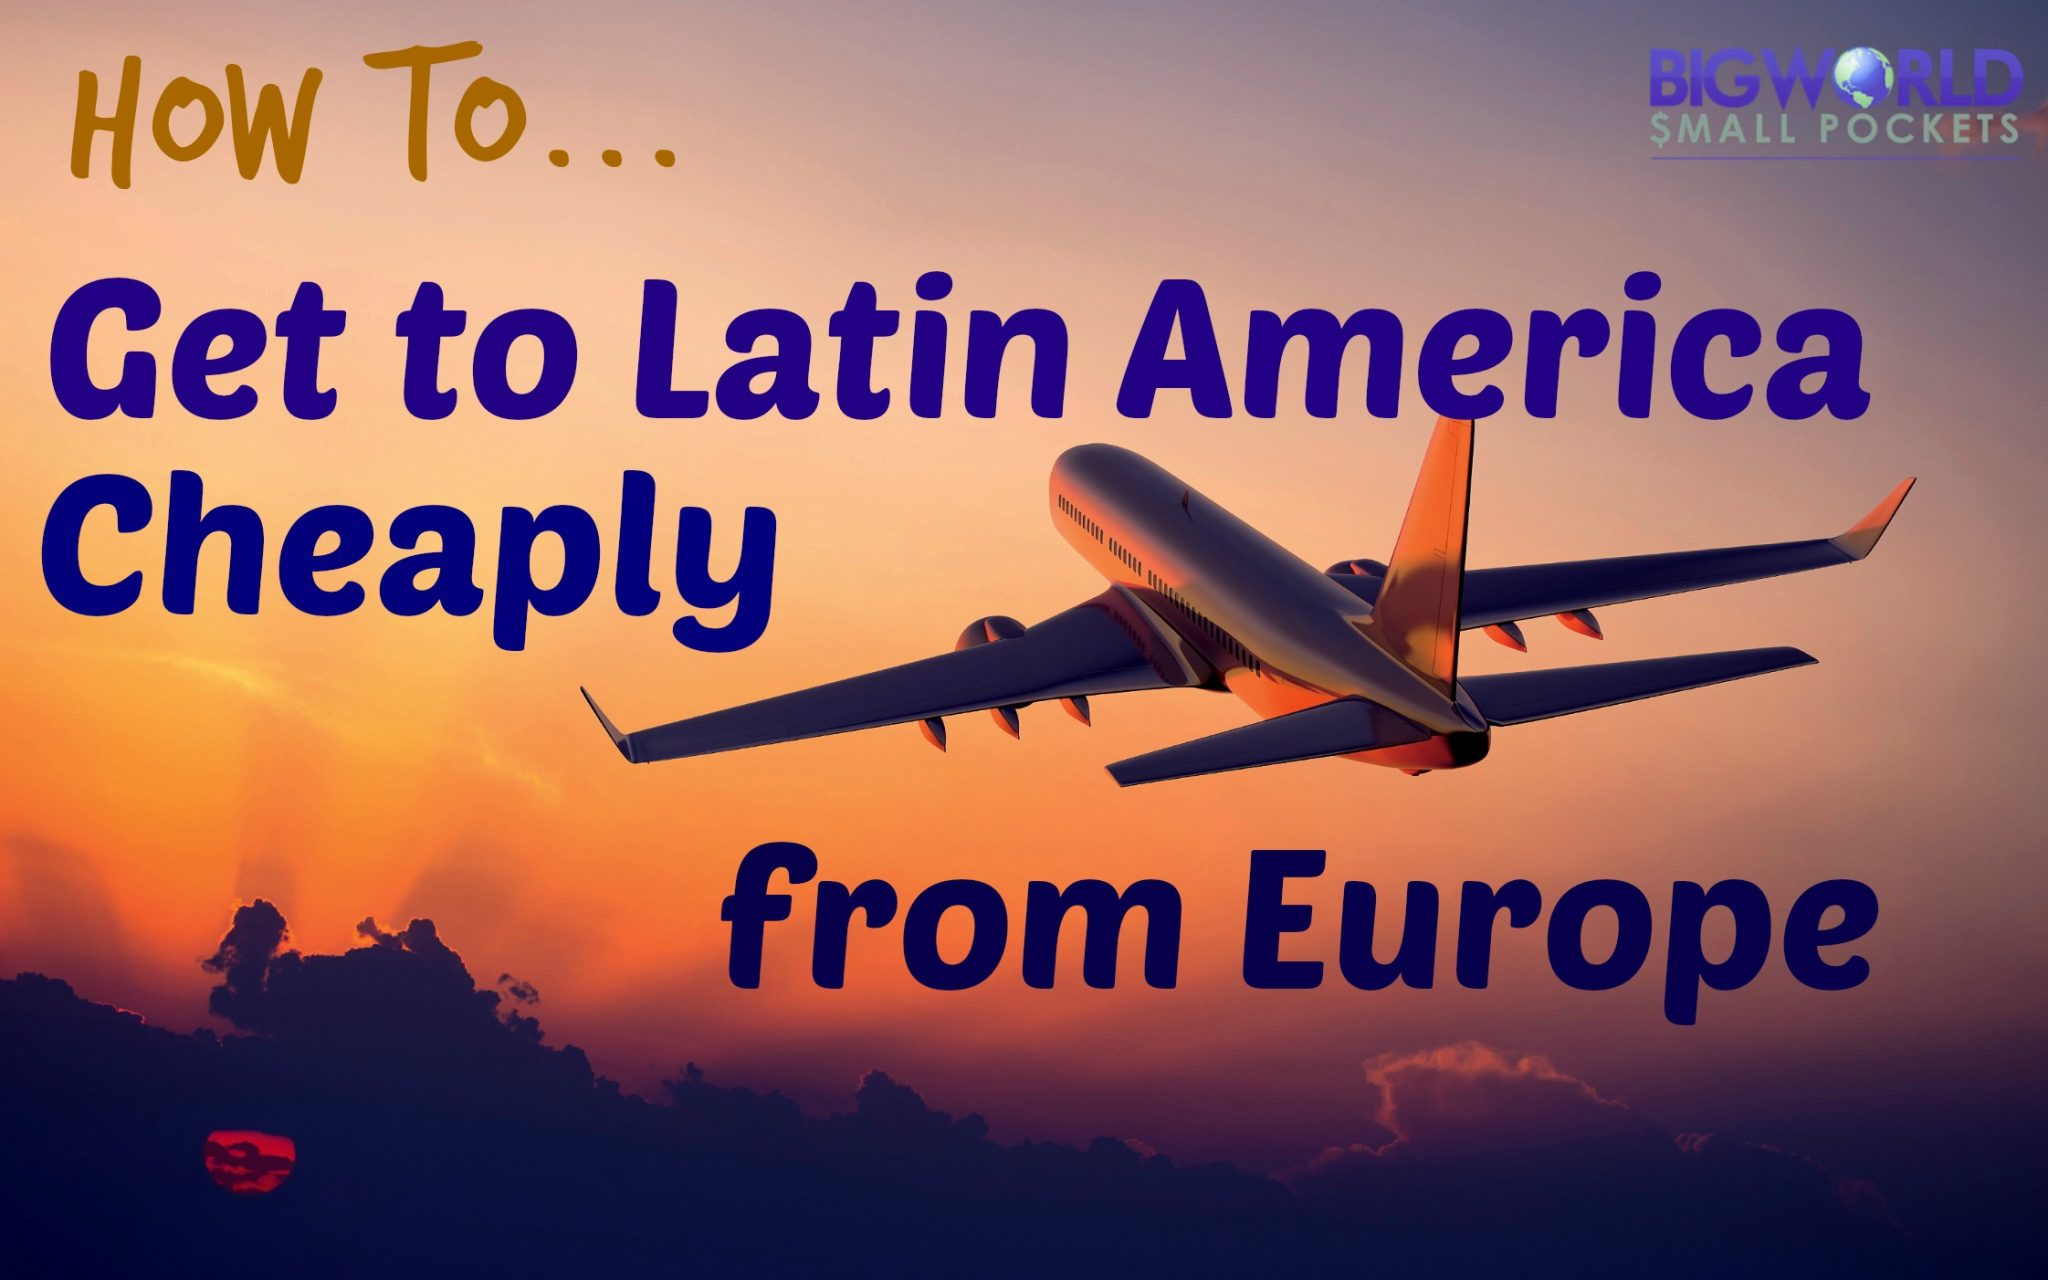 Get to Latin America Cheaply